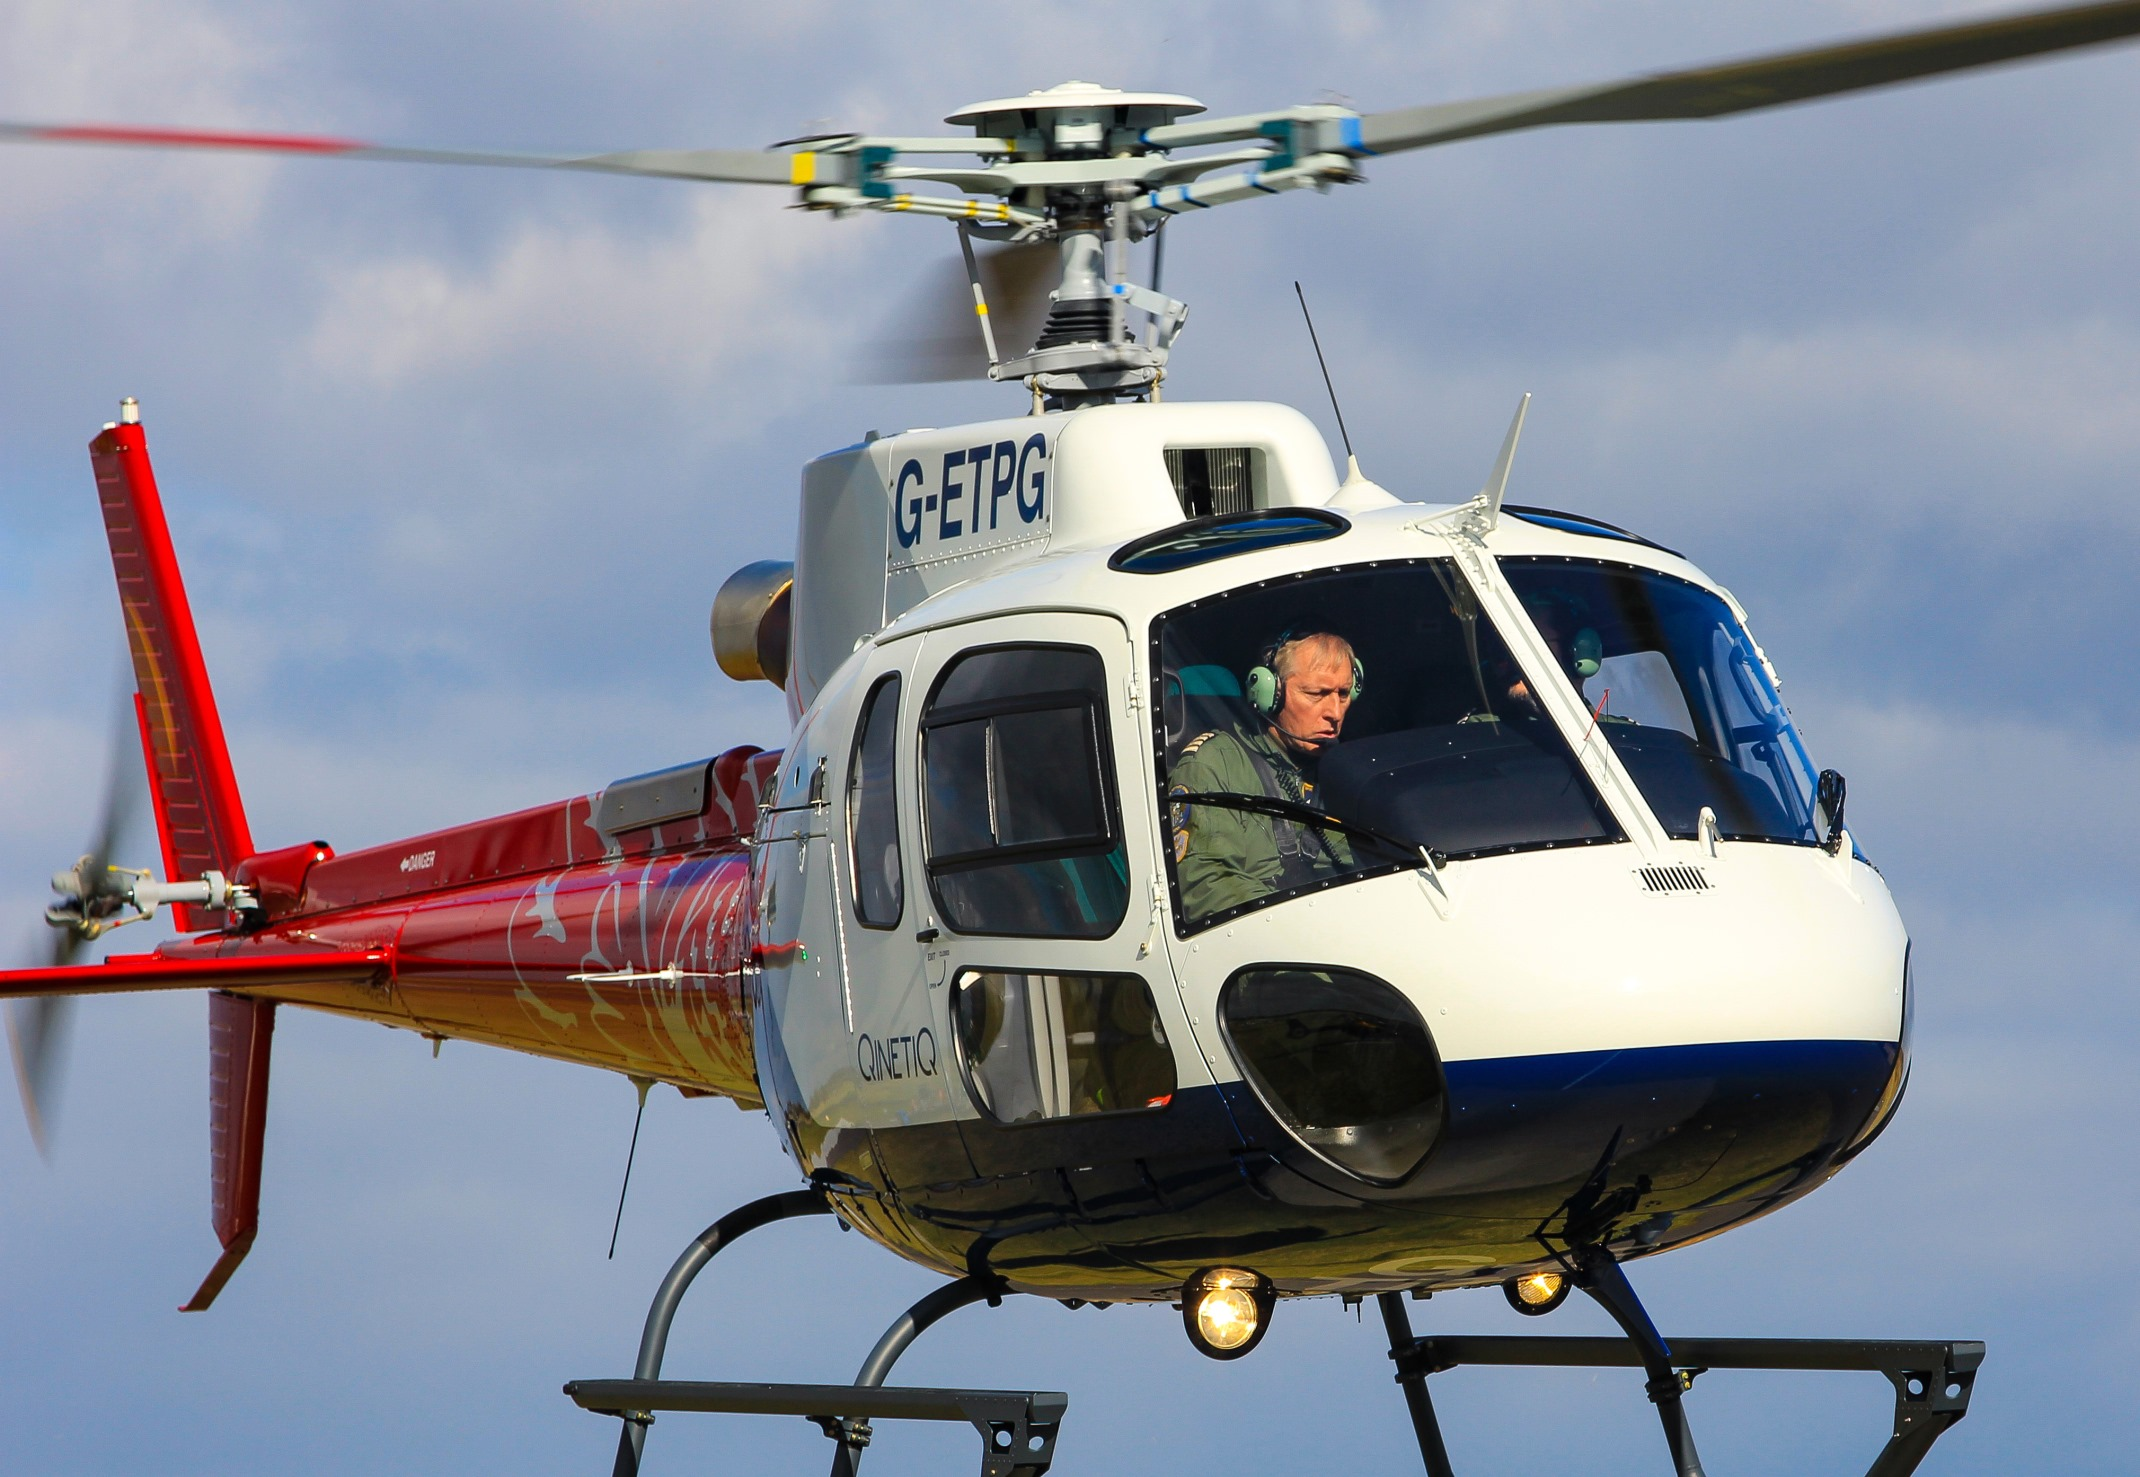 Airbus H125 helicopter